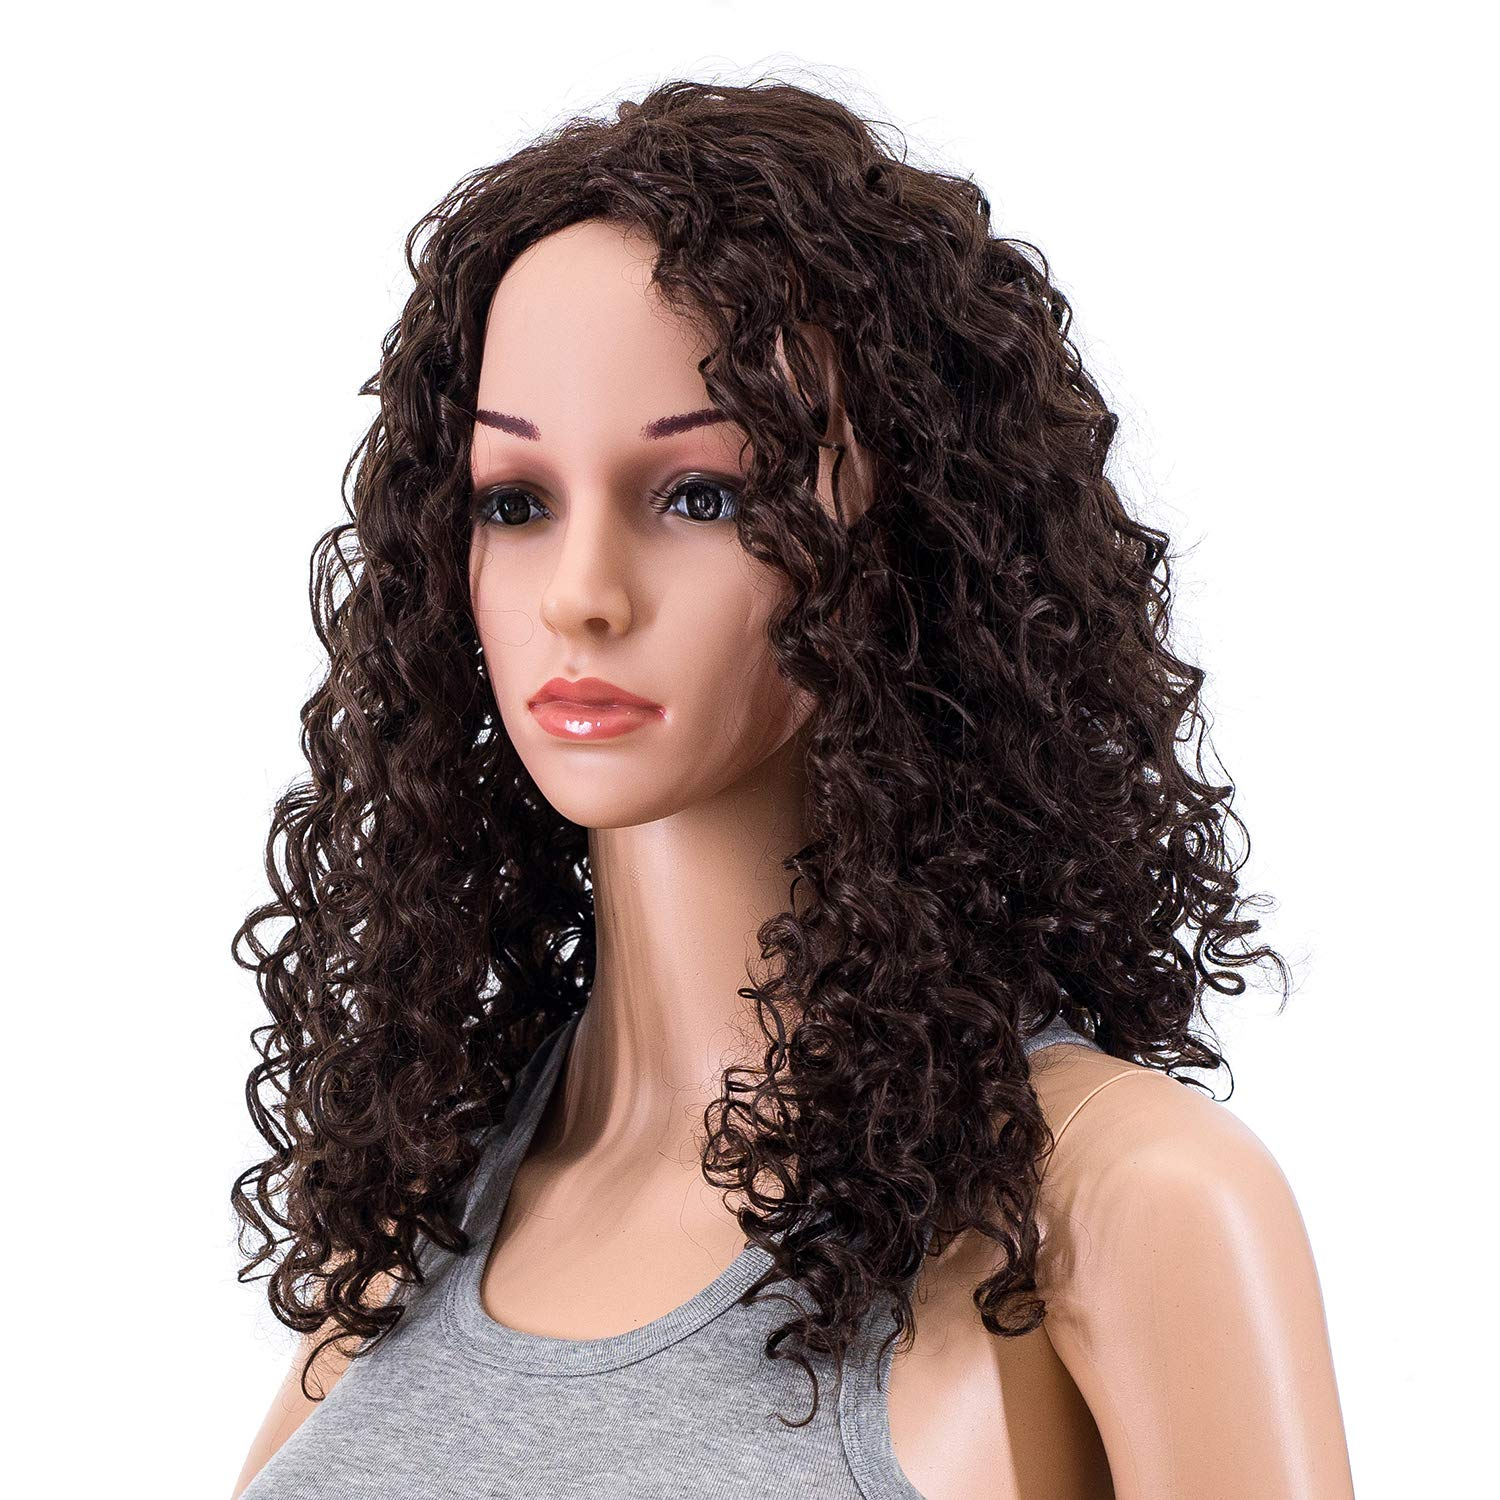 SWACC 20-Inch Long Big Bouffant Curly Wigs for Women Synthetic Heat Resistant Fiber Hair Pieces with Wig Cap (Black)